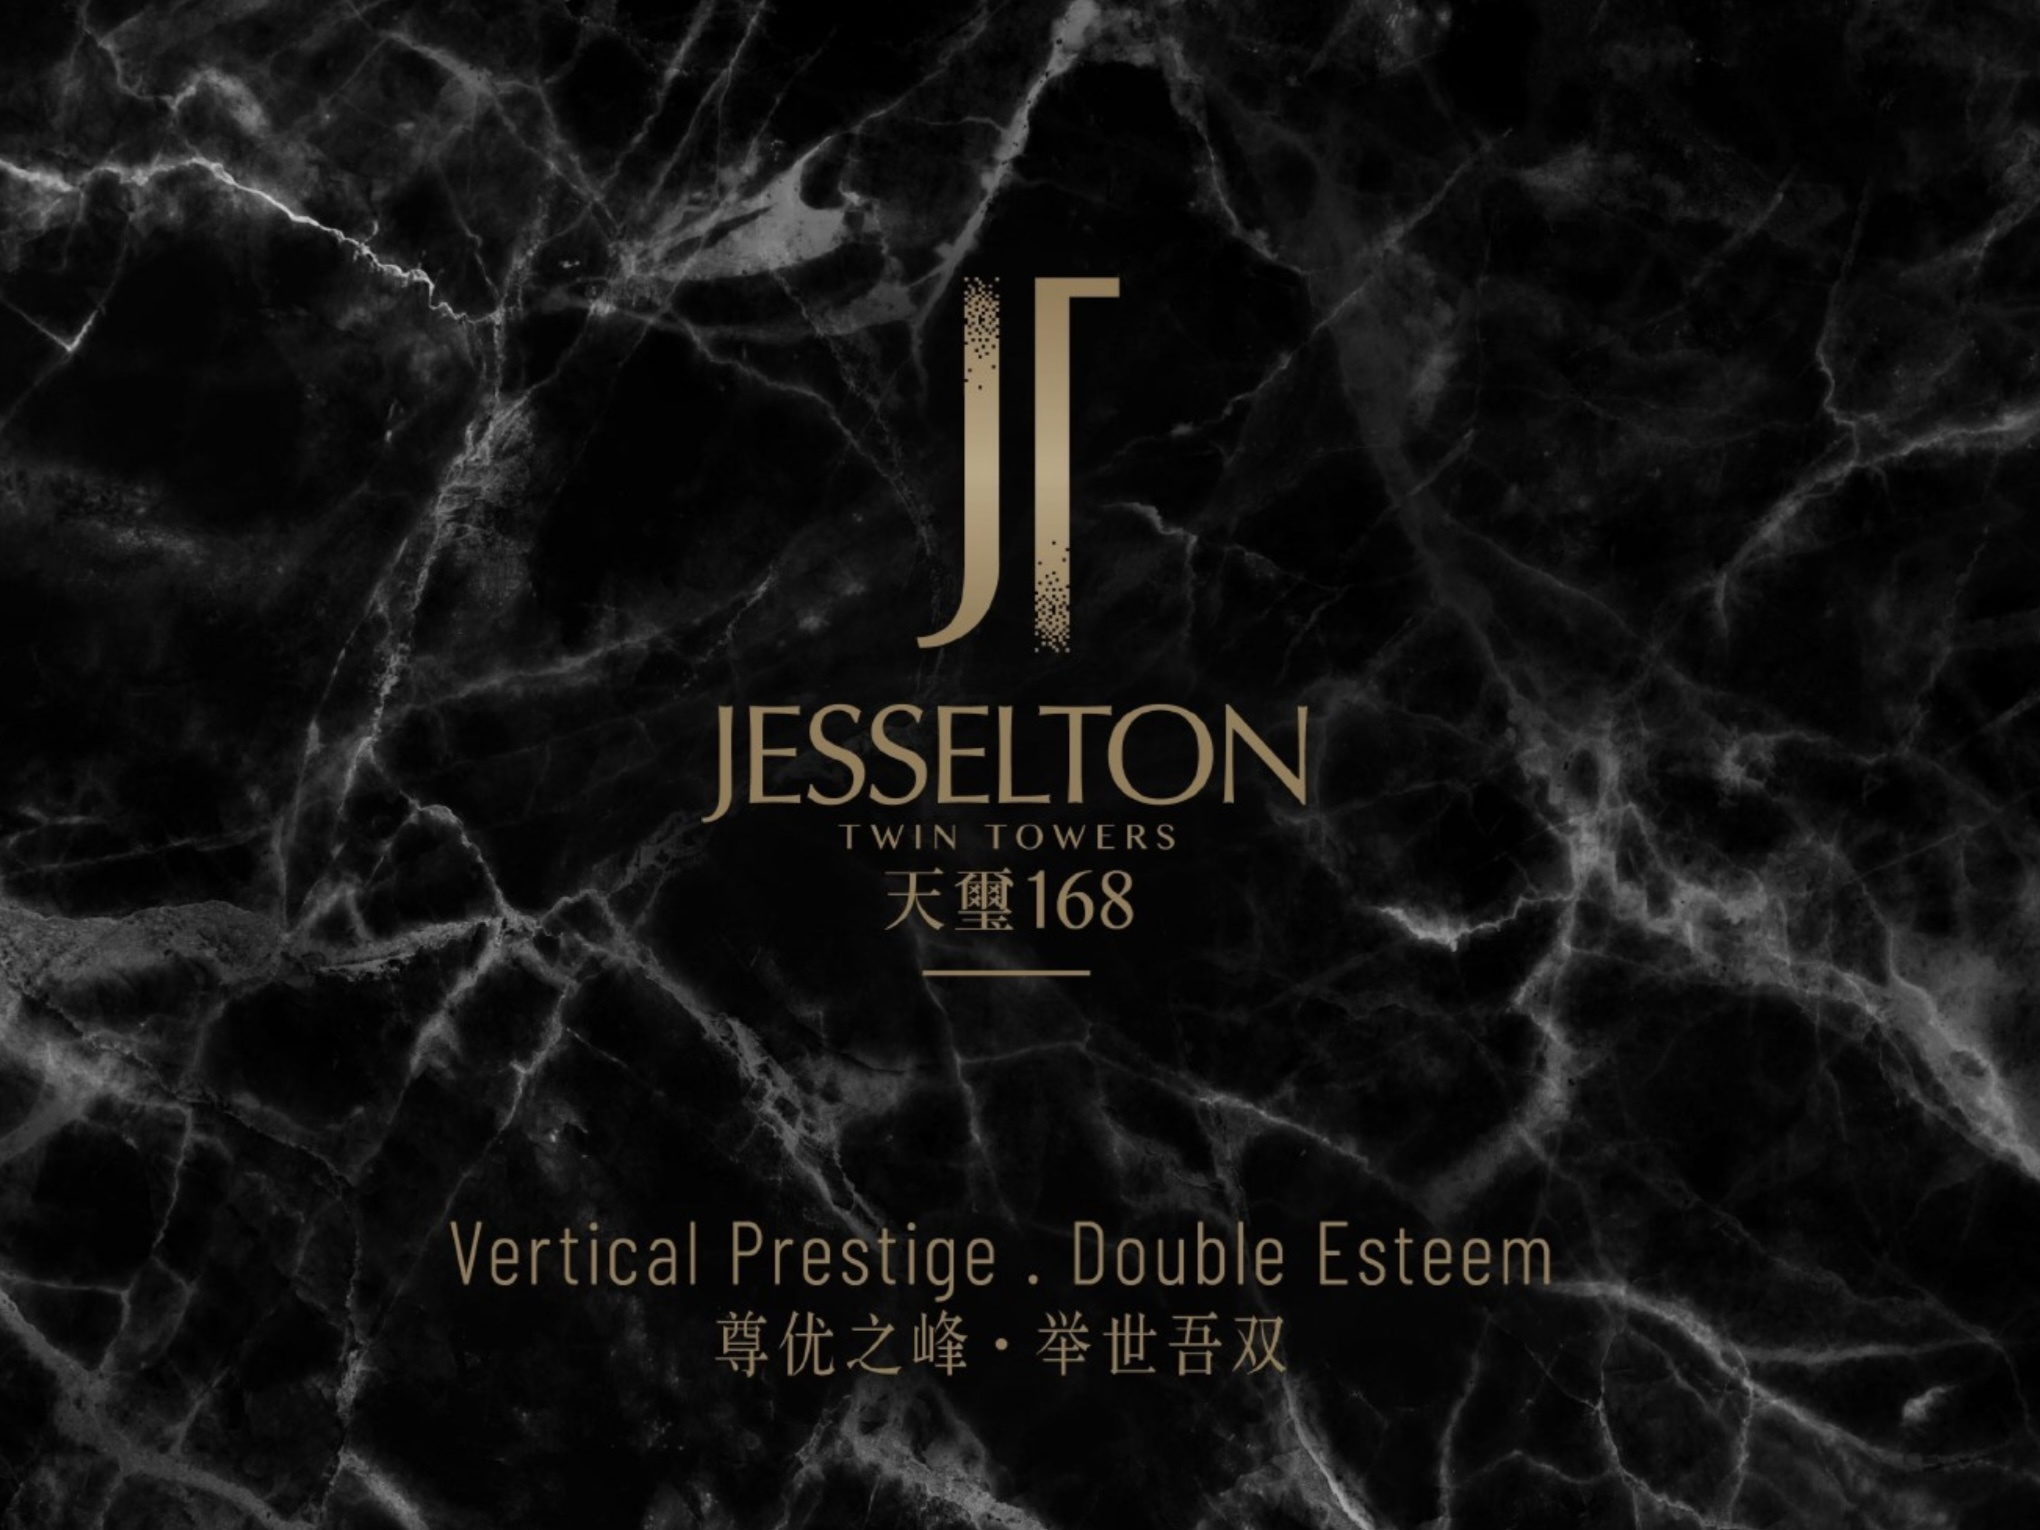 Jesselton Twin Towers | 360° Virtual Tour Available